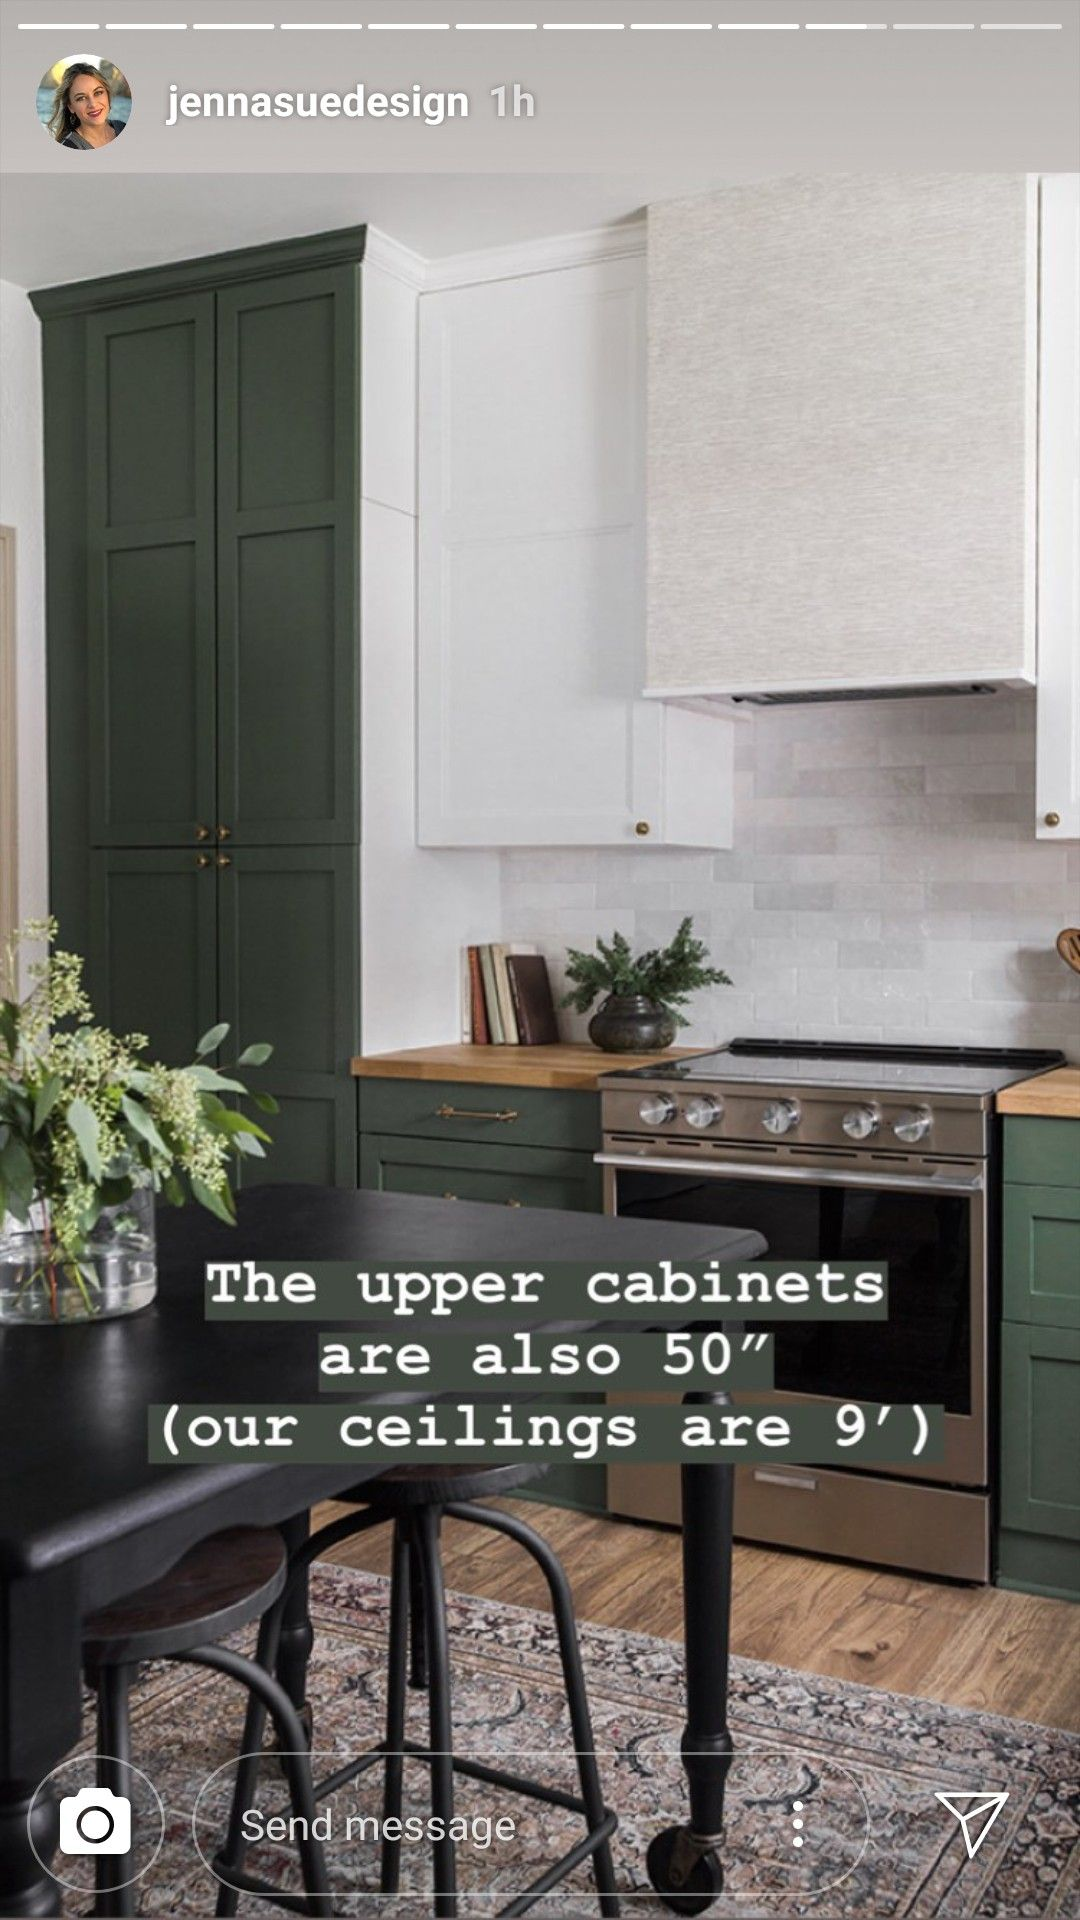 Jennasuedesign Uppers Are 50 Inches For 9 Foot Ceiling Benjamin Moore Peale Green In 2020 Home Kitchens Upper Cabinets Ikea Kitchen